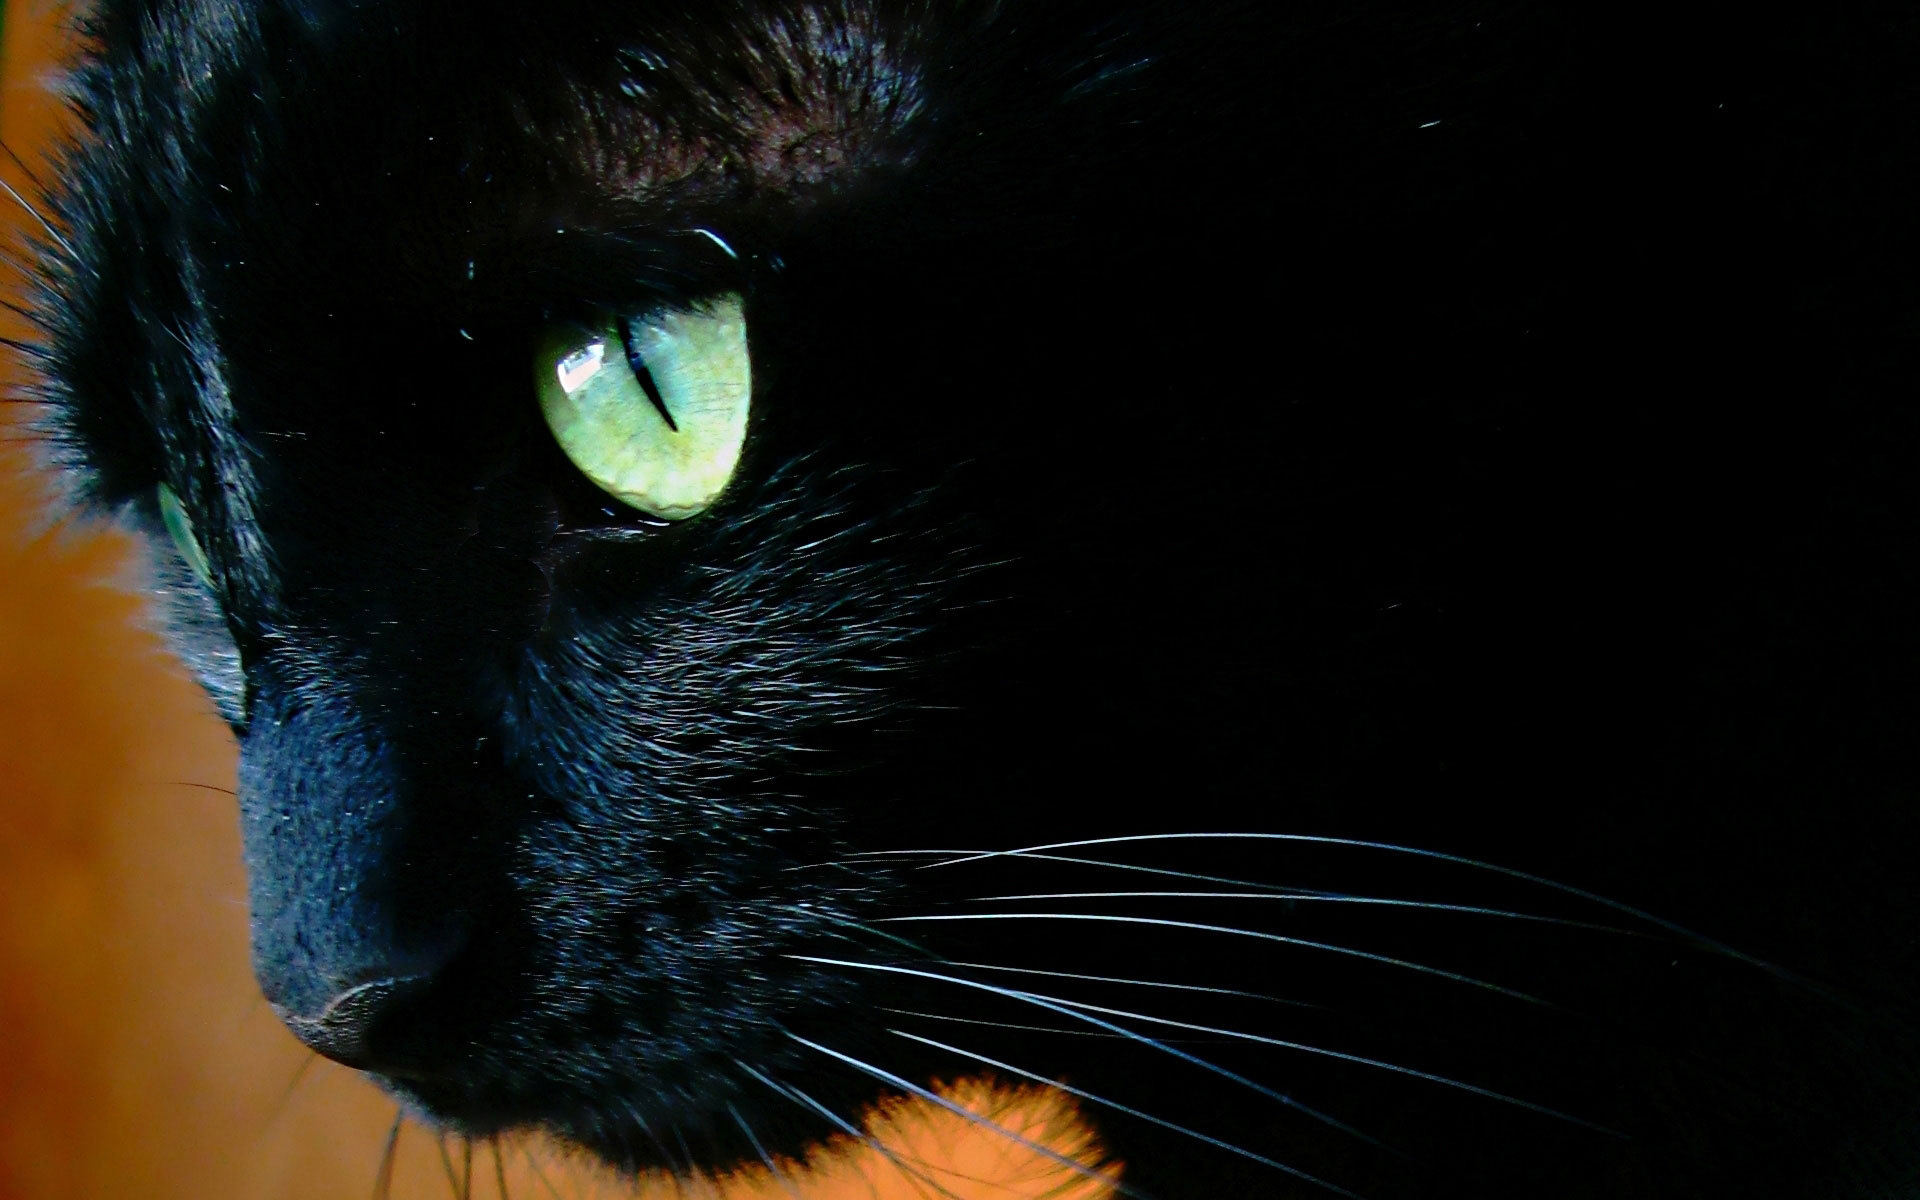 Black Cat Eyes Wallpaper: Black Cat Eyes Wallpaper